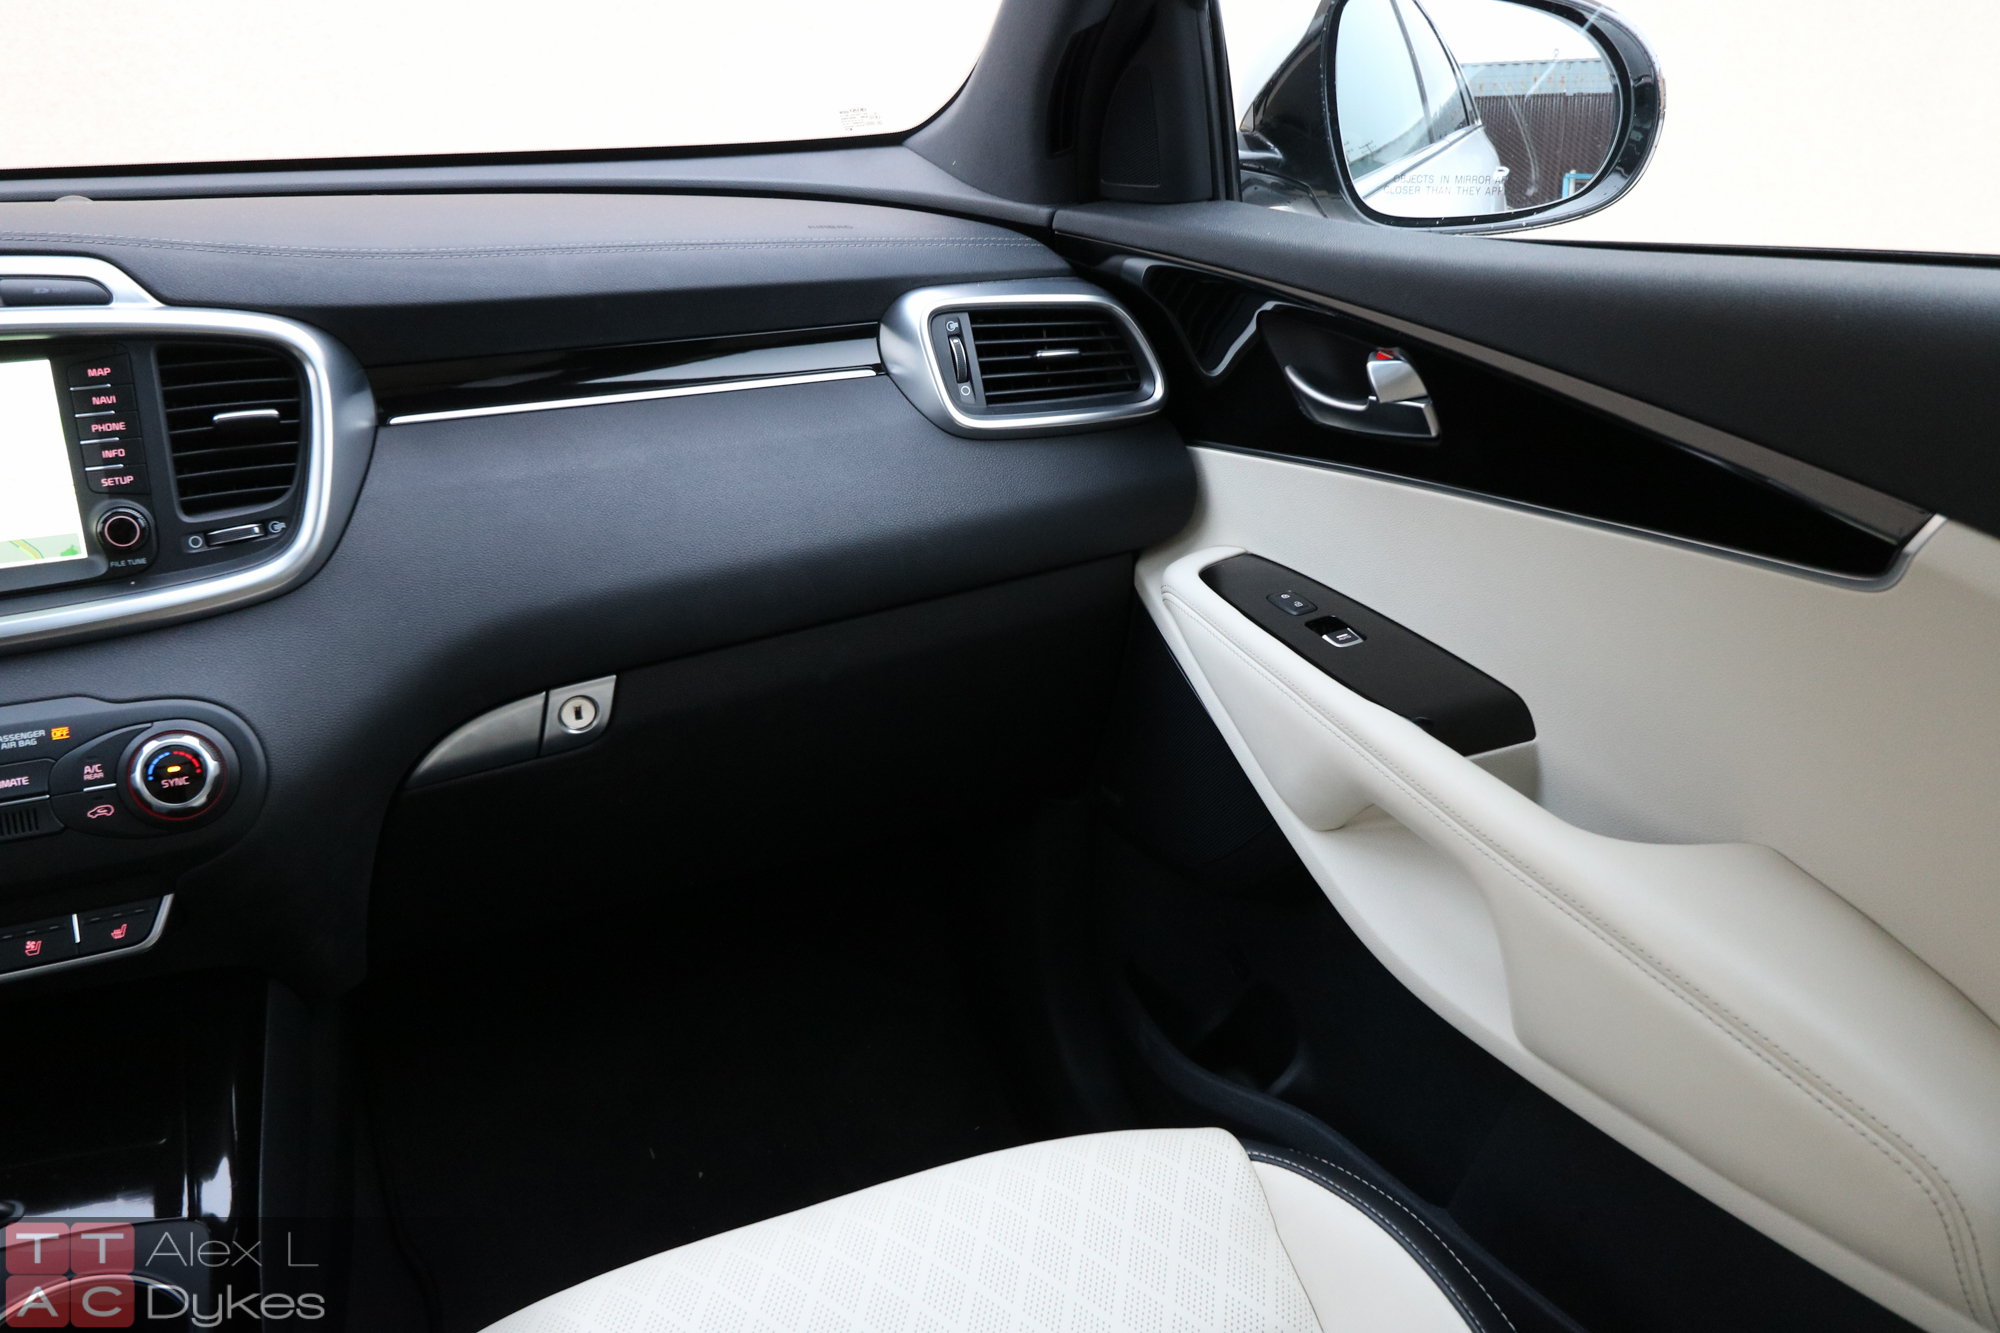 2016 Kia Sorento Limited Interior 009 The Truth About Cars